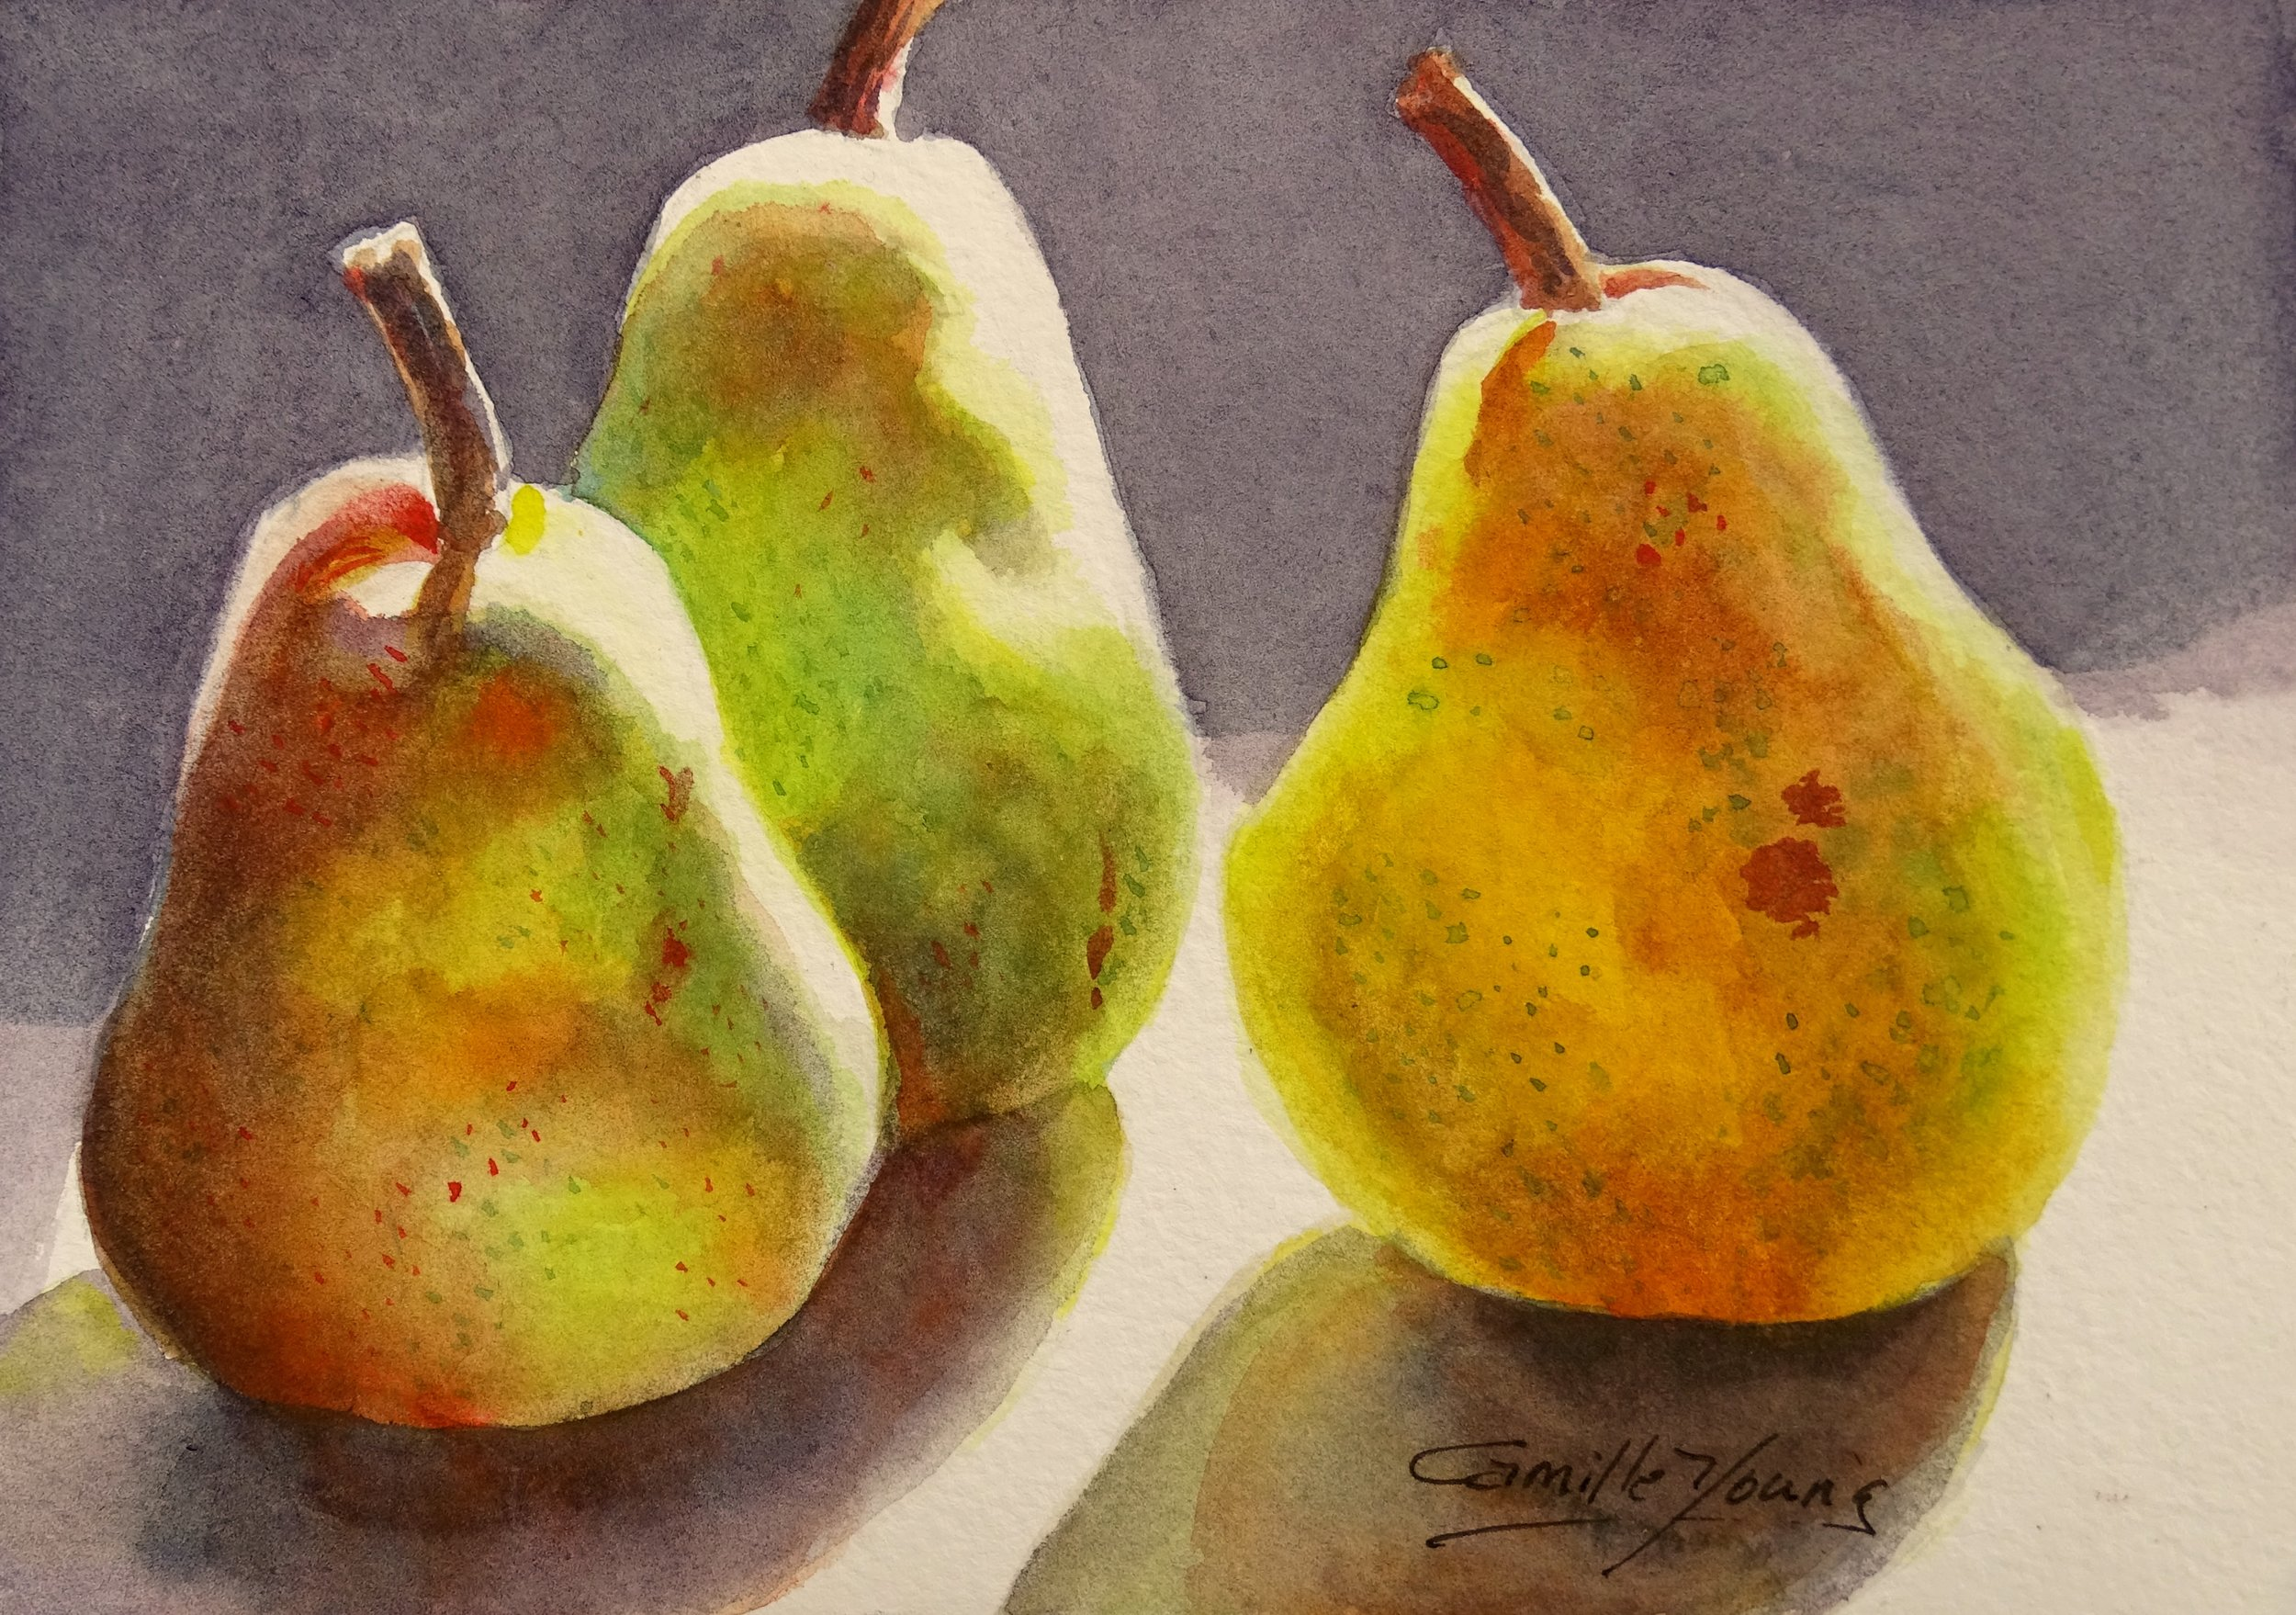 Pears   More Info →